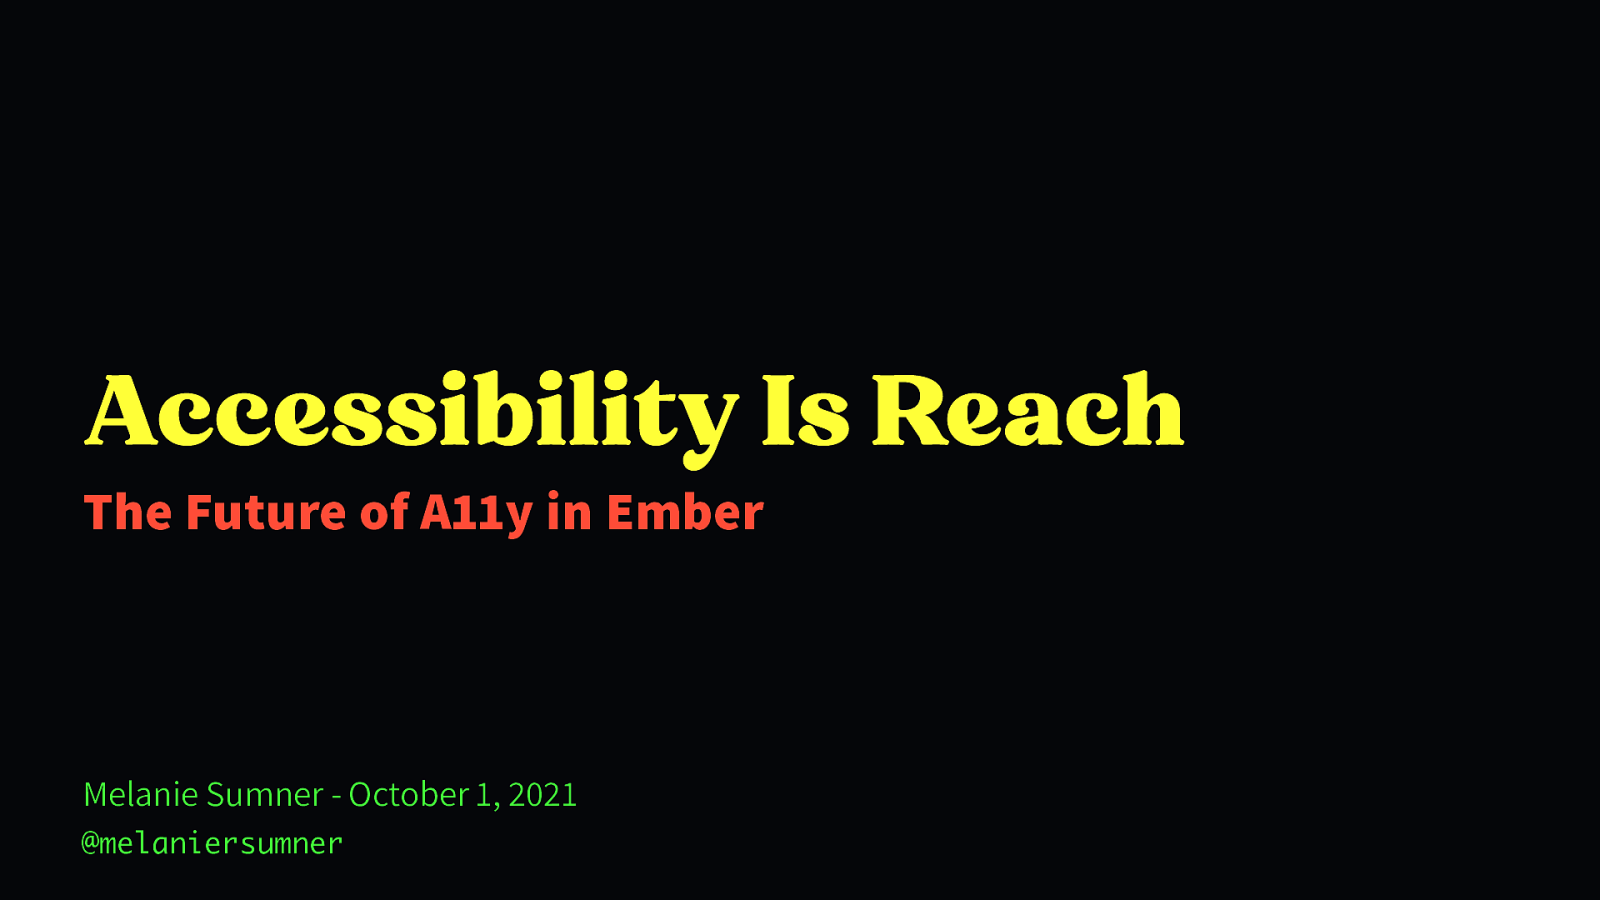 Accessibility Is Reach The Future of A11y in Ember